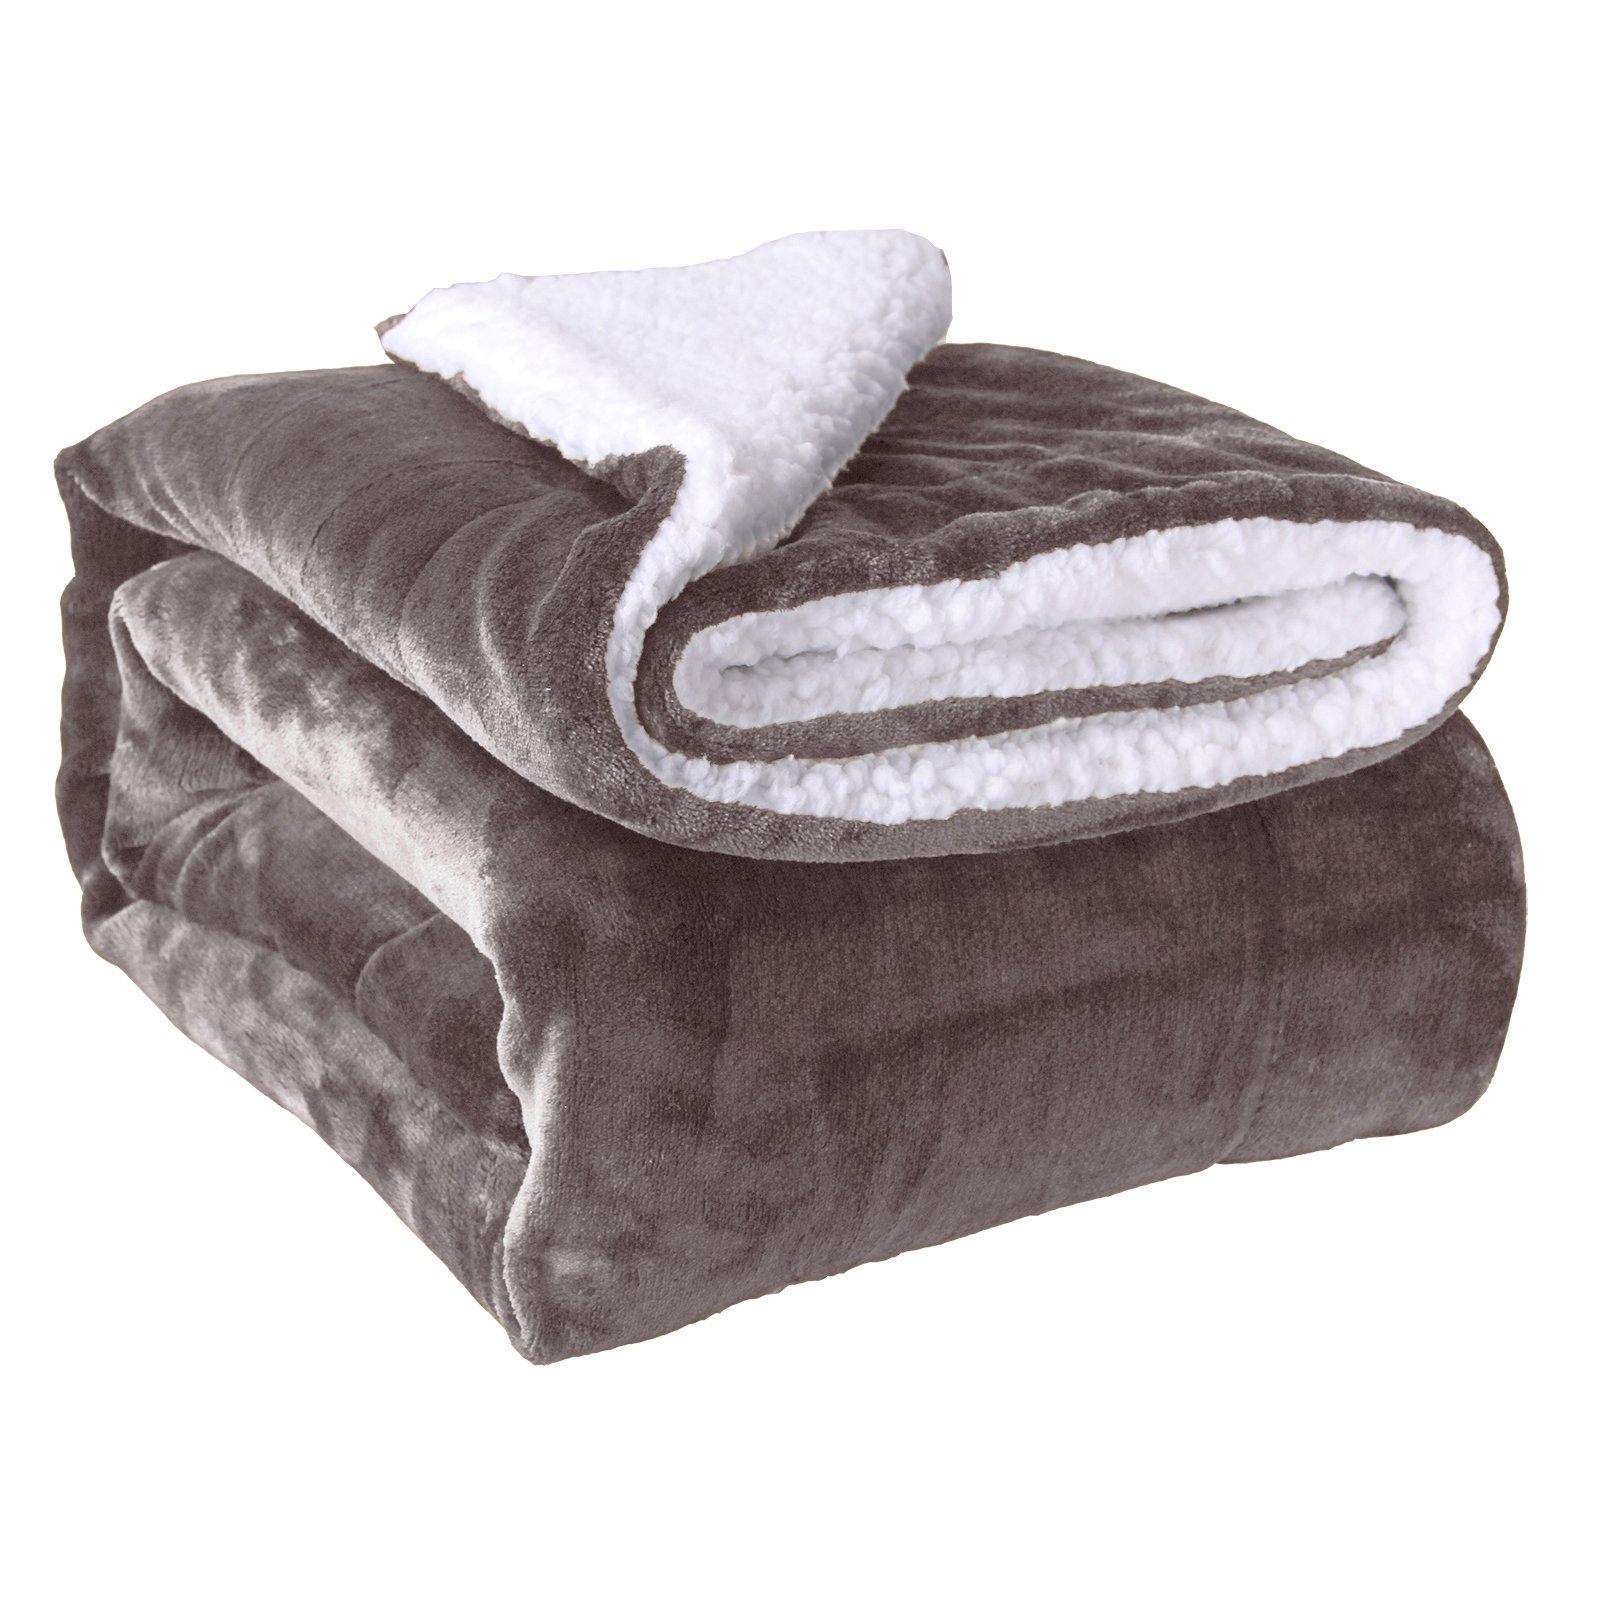 HoroM Sherpa Throw Blanket Grey 50''x60'' Microfiber Reversible Bed Throws Luxury Soft Cozy Fluffy Warm and Fuzzy Blankets for Bed or Couch